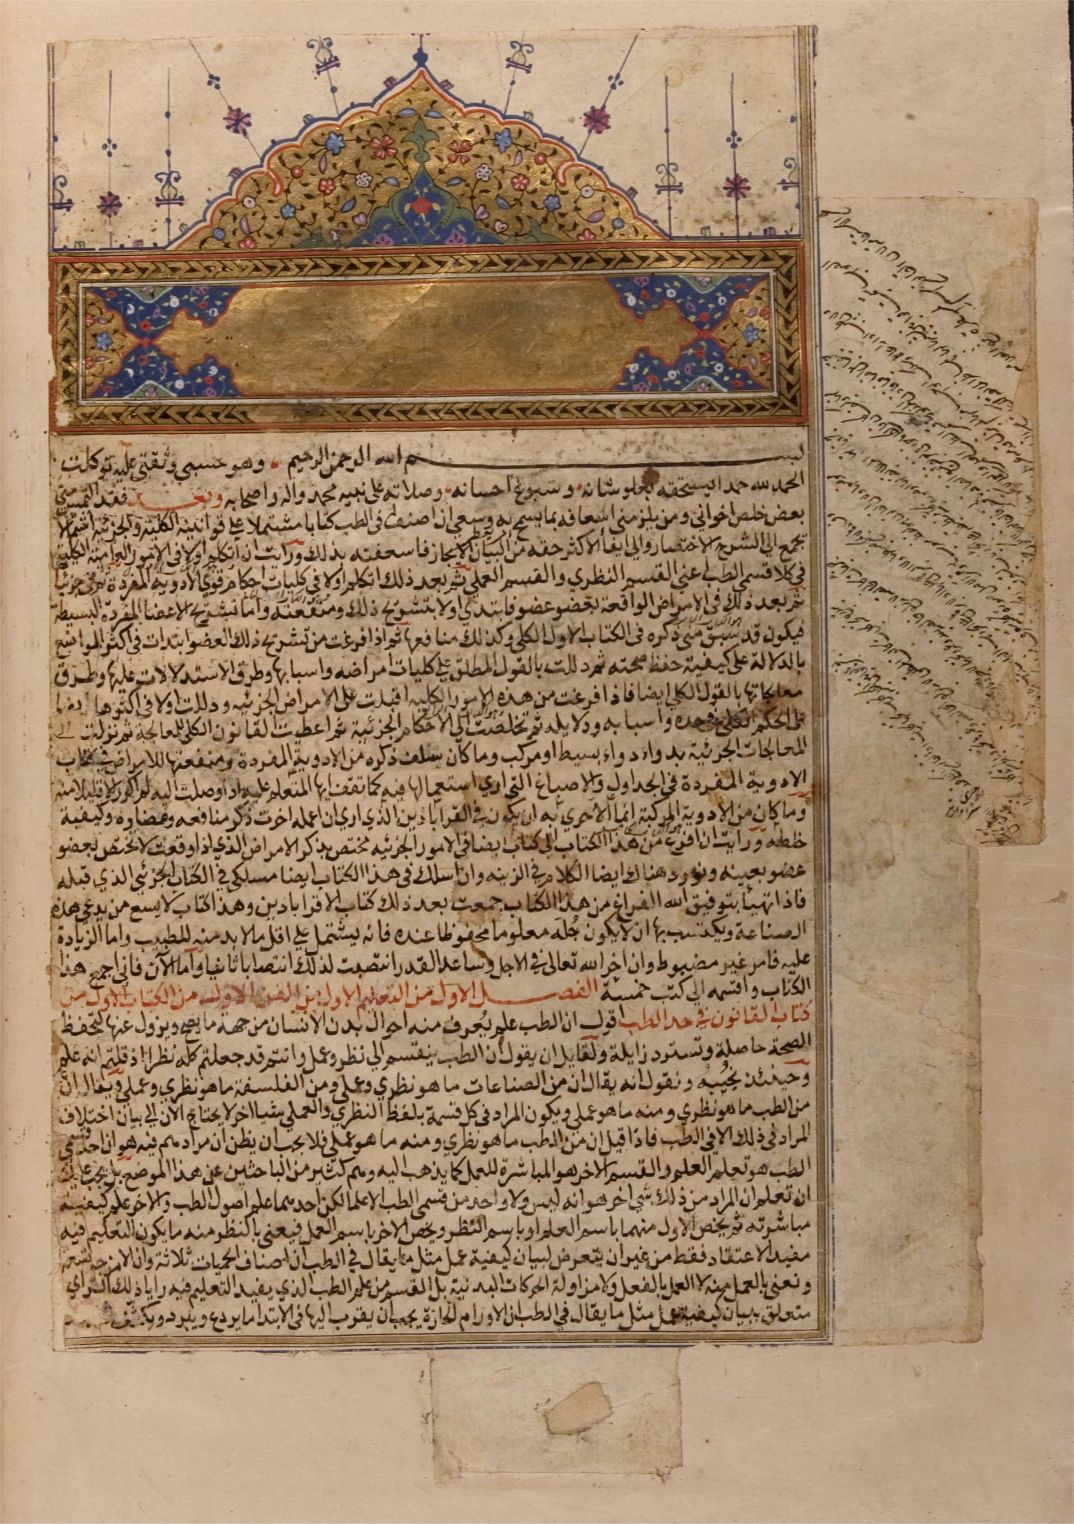 Photo of Ibn Sina's medical manuscript shows hand-written Arabic and a gold and floral pattern at the top of the page